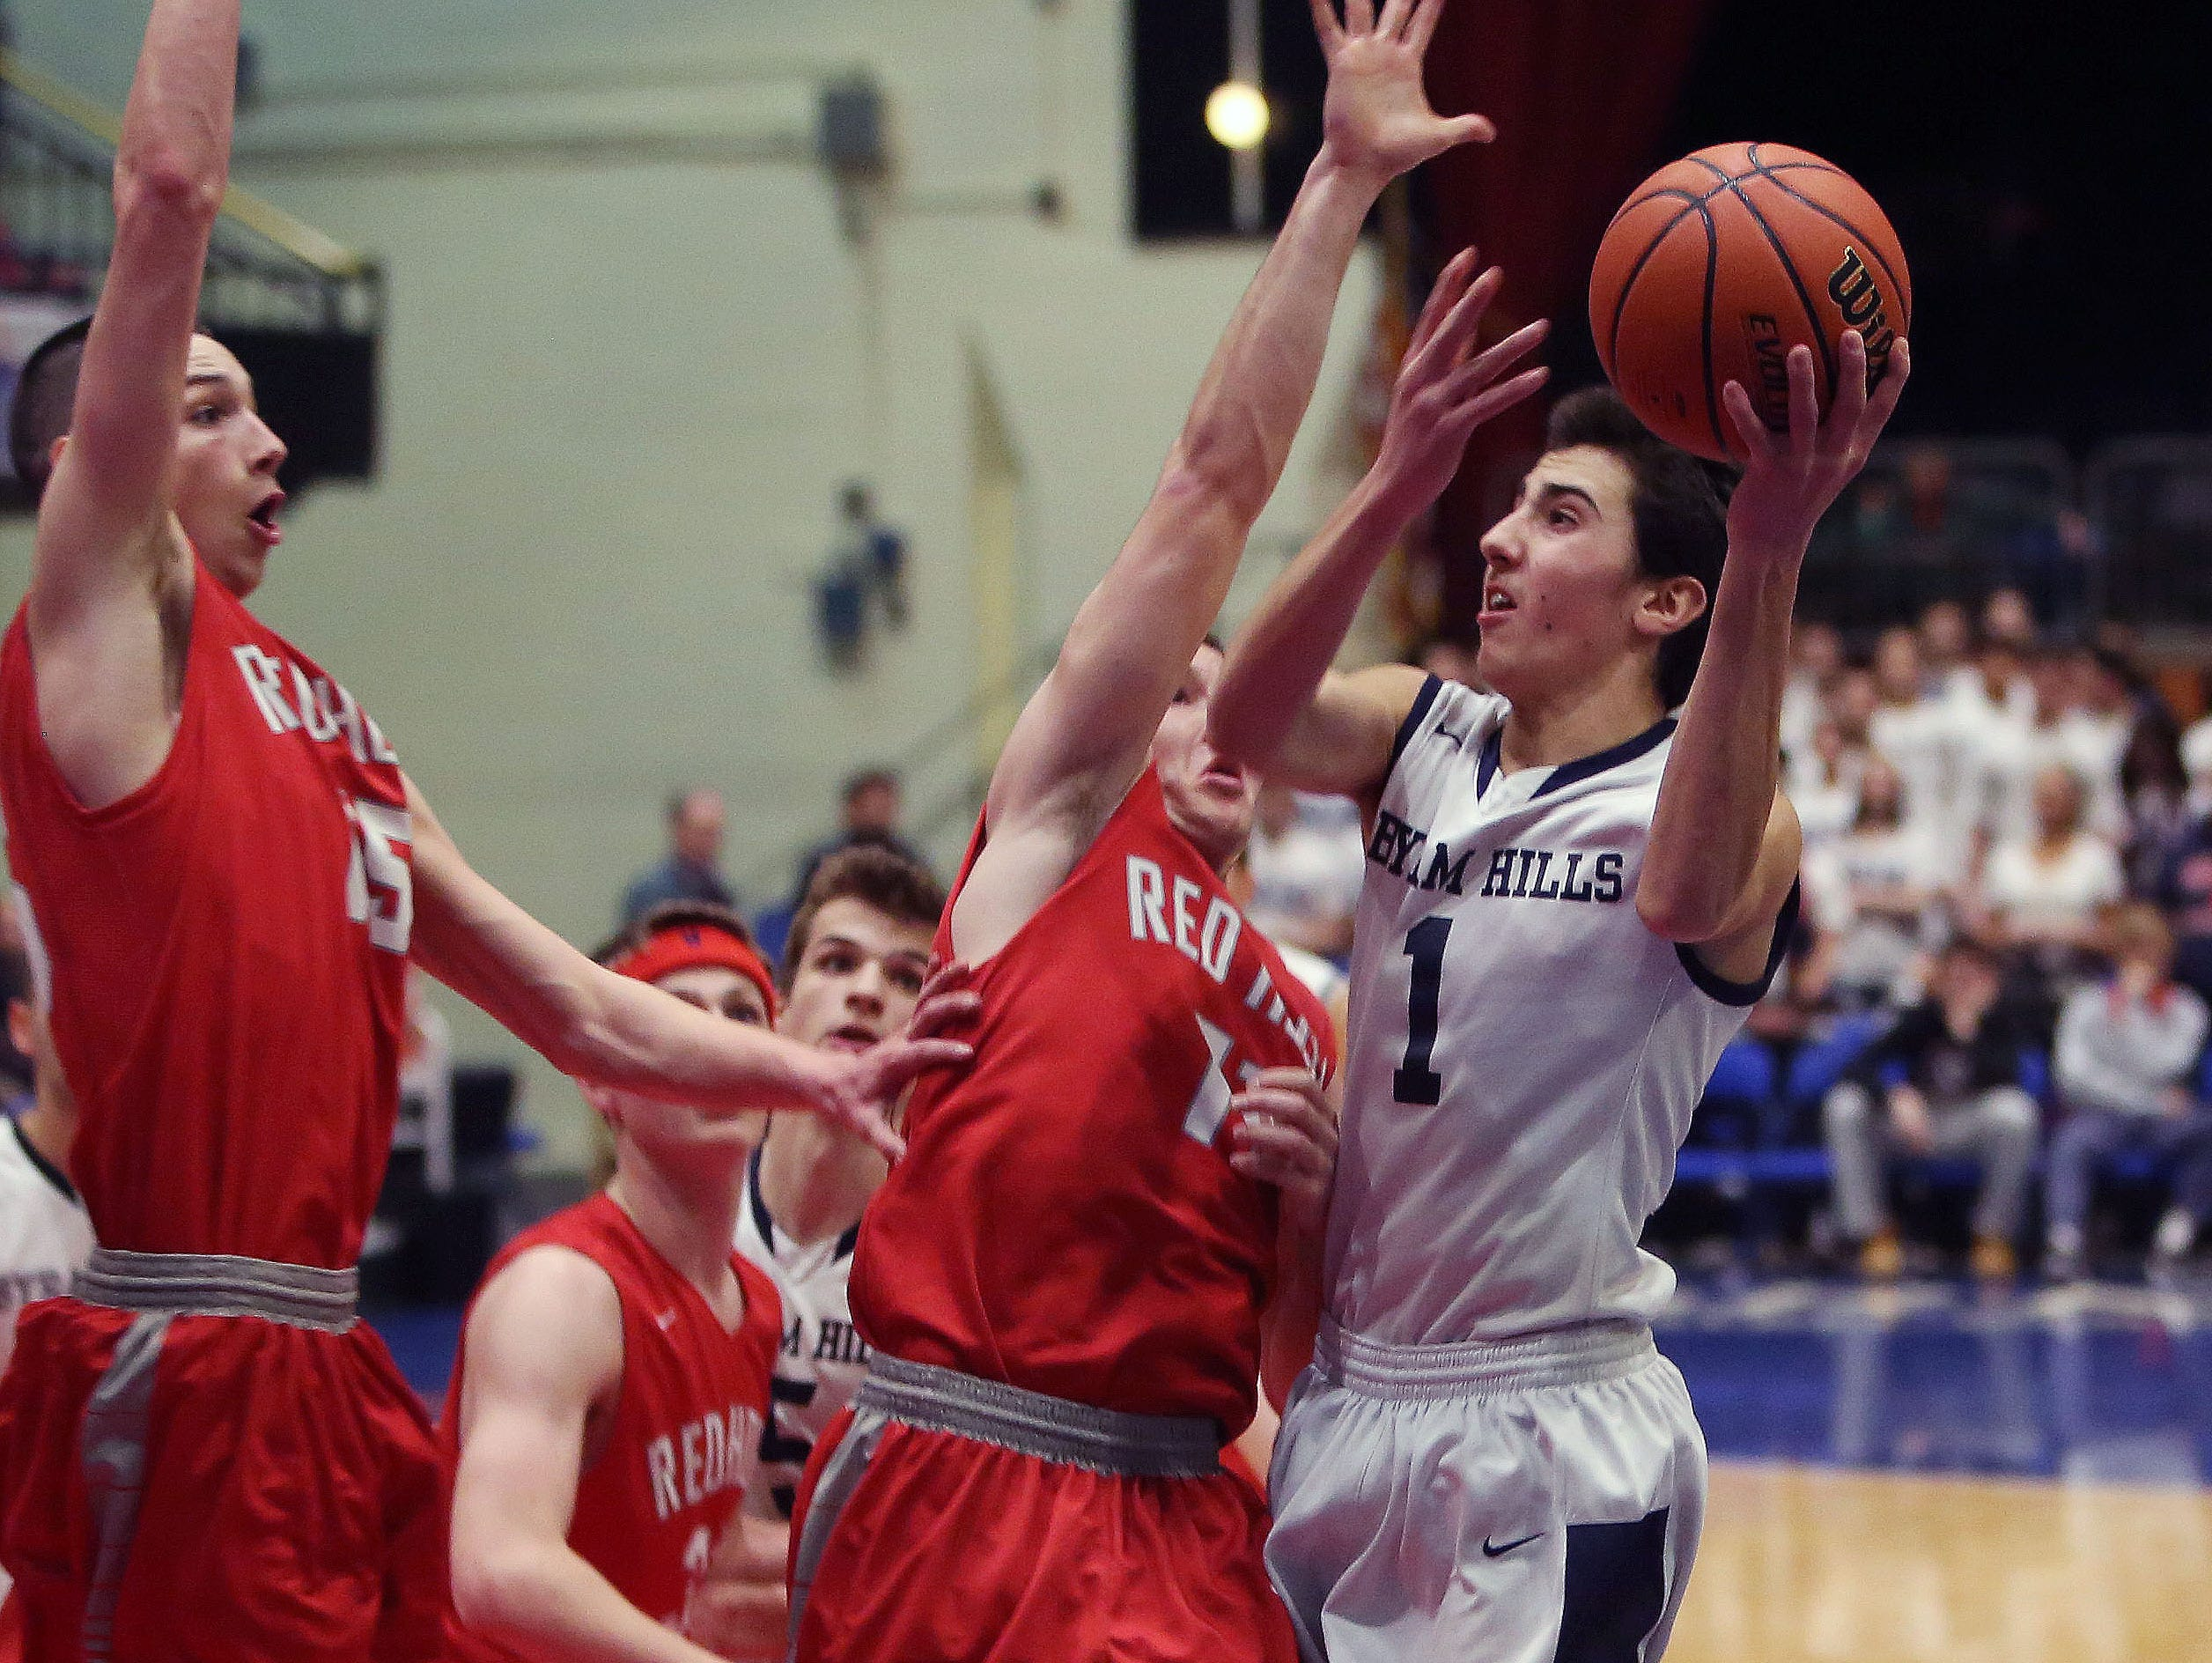 Byrom Hills' Matt Milone (1) drives to the basket against Red Hook during the boys Class A basketball playoff game at the Westchester County Center in White Plains March. 1, 2016.